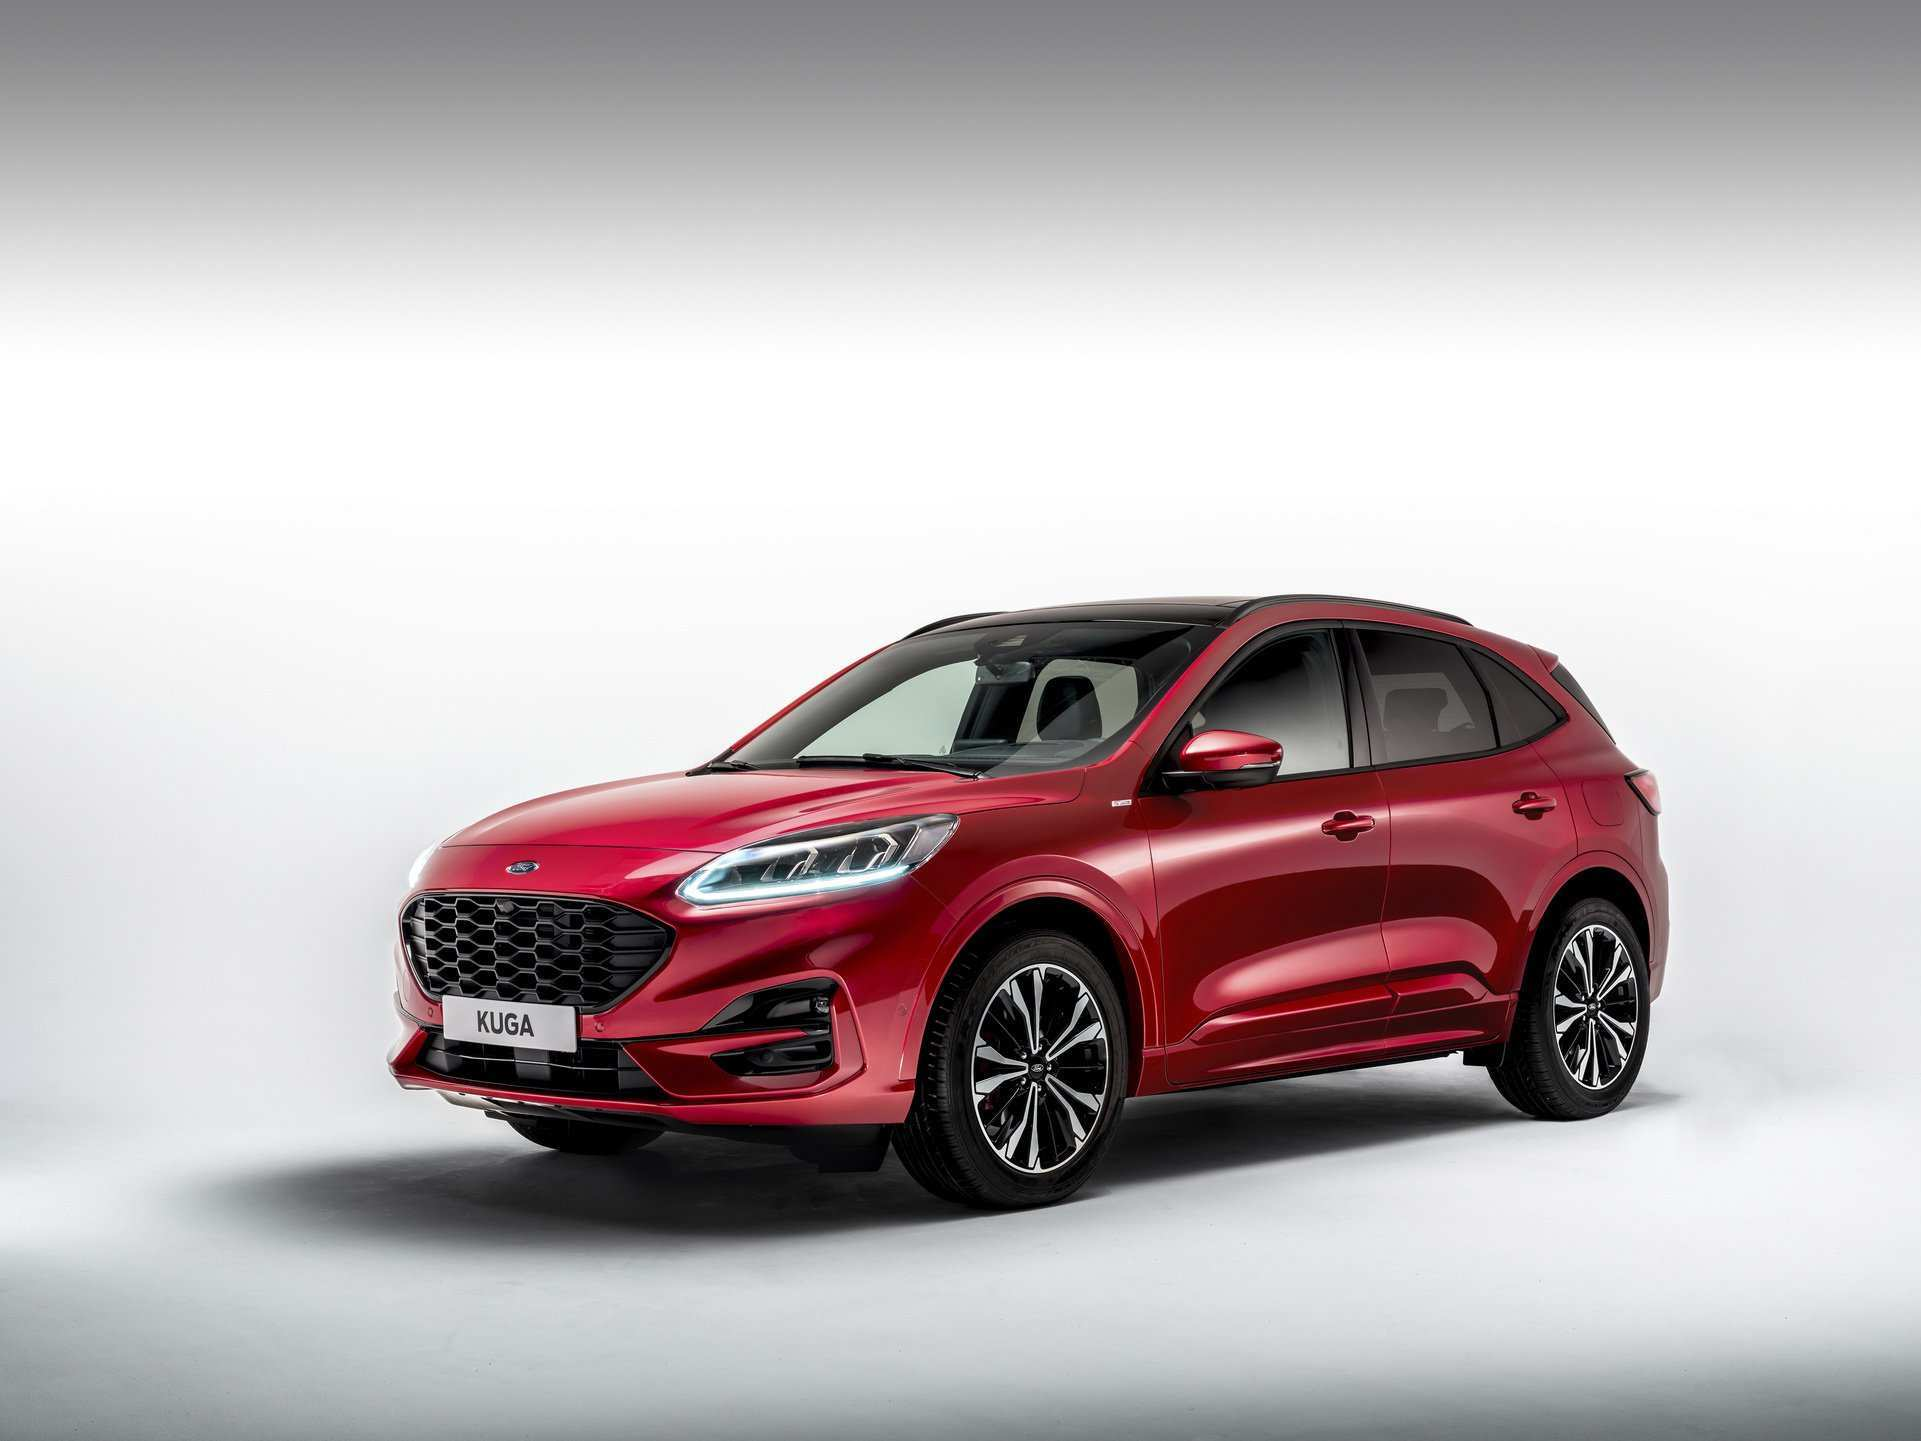 59 Gallery of Ford Kuga 2020 Concept with Ford Kuga 2020